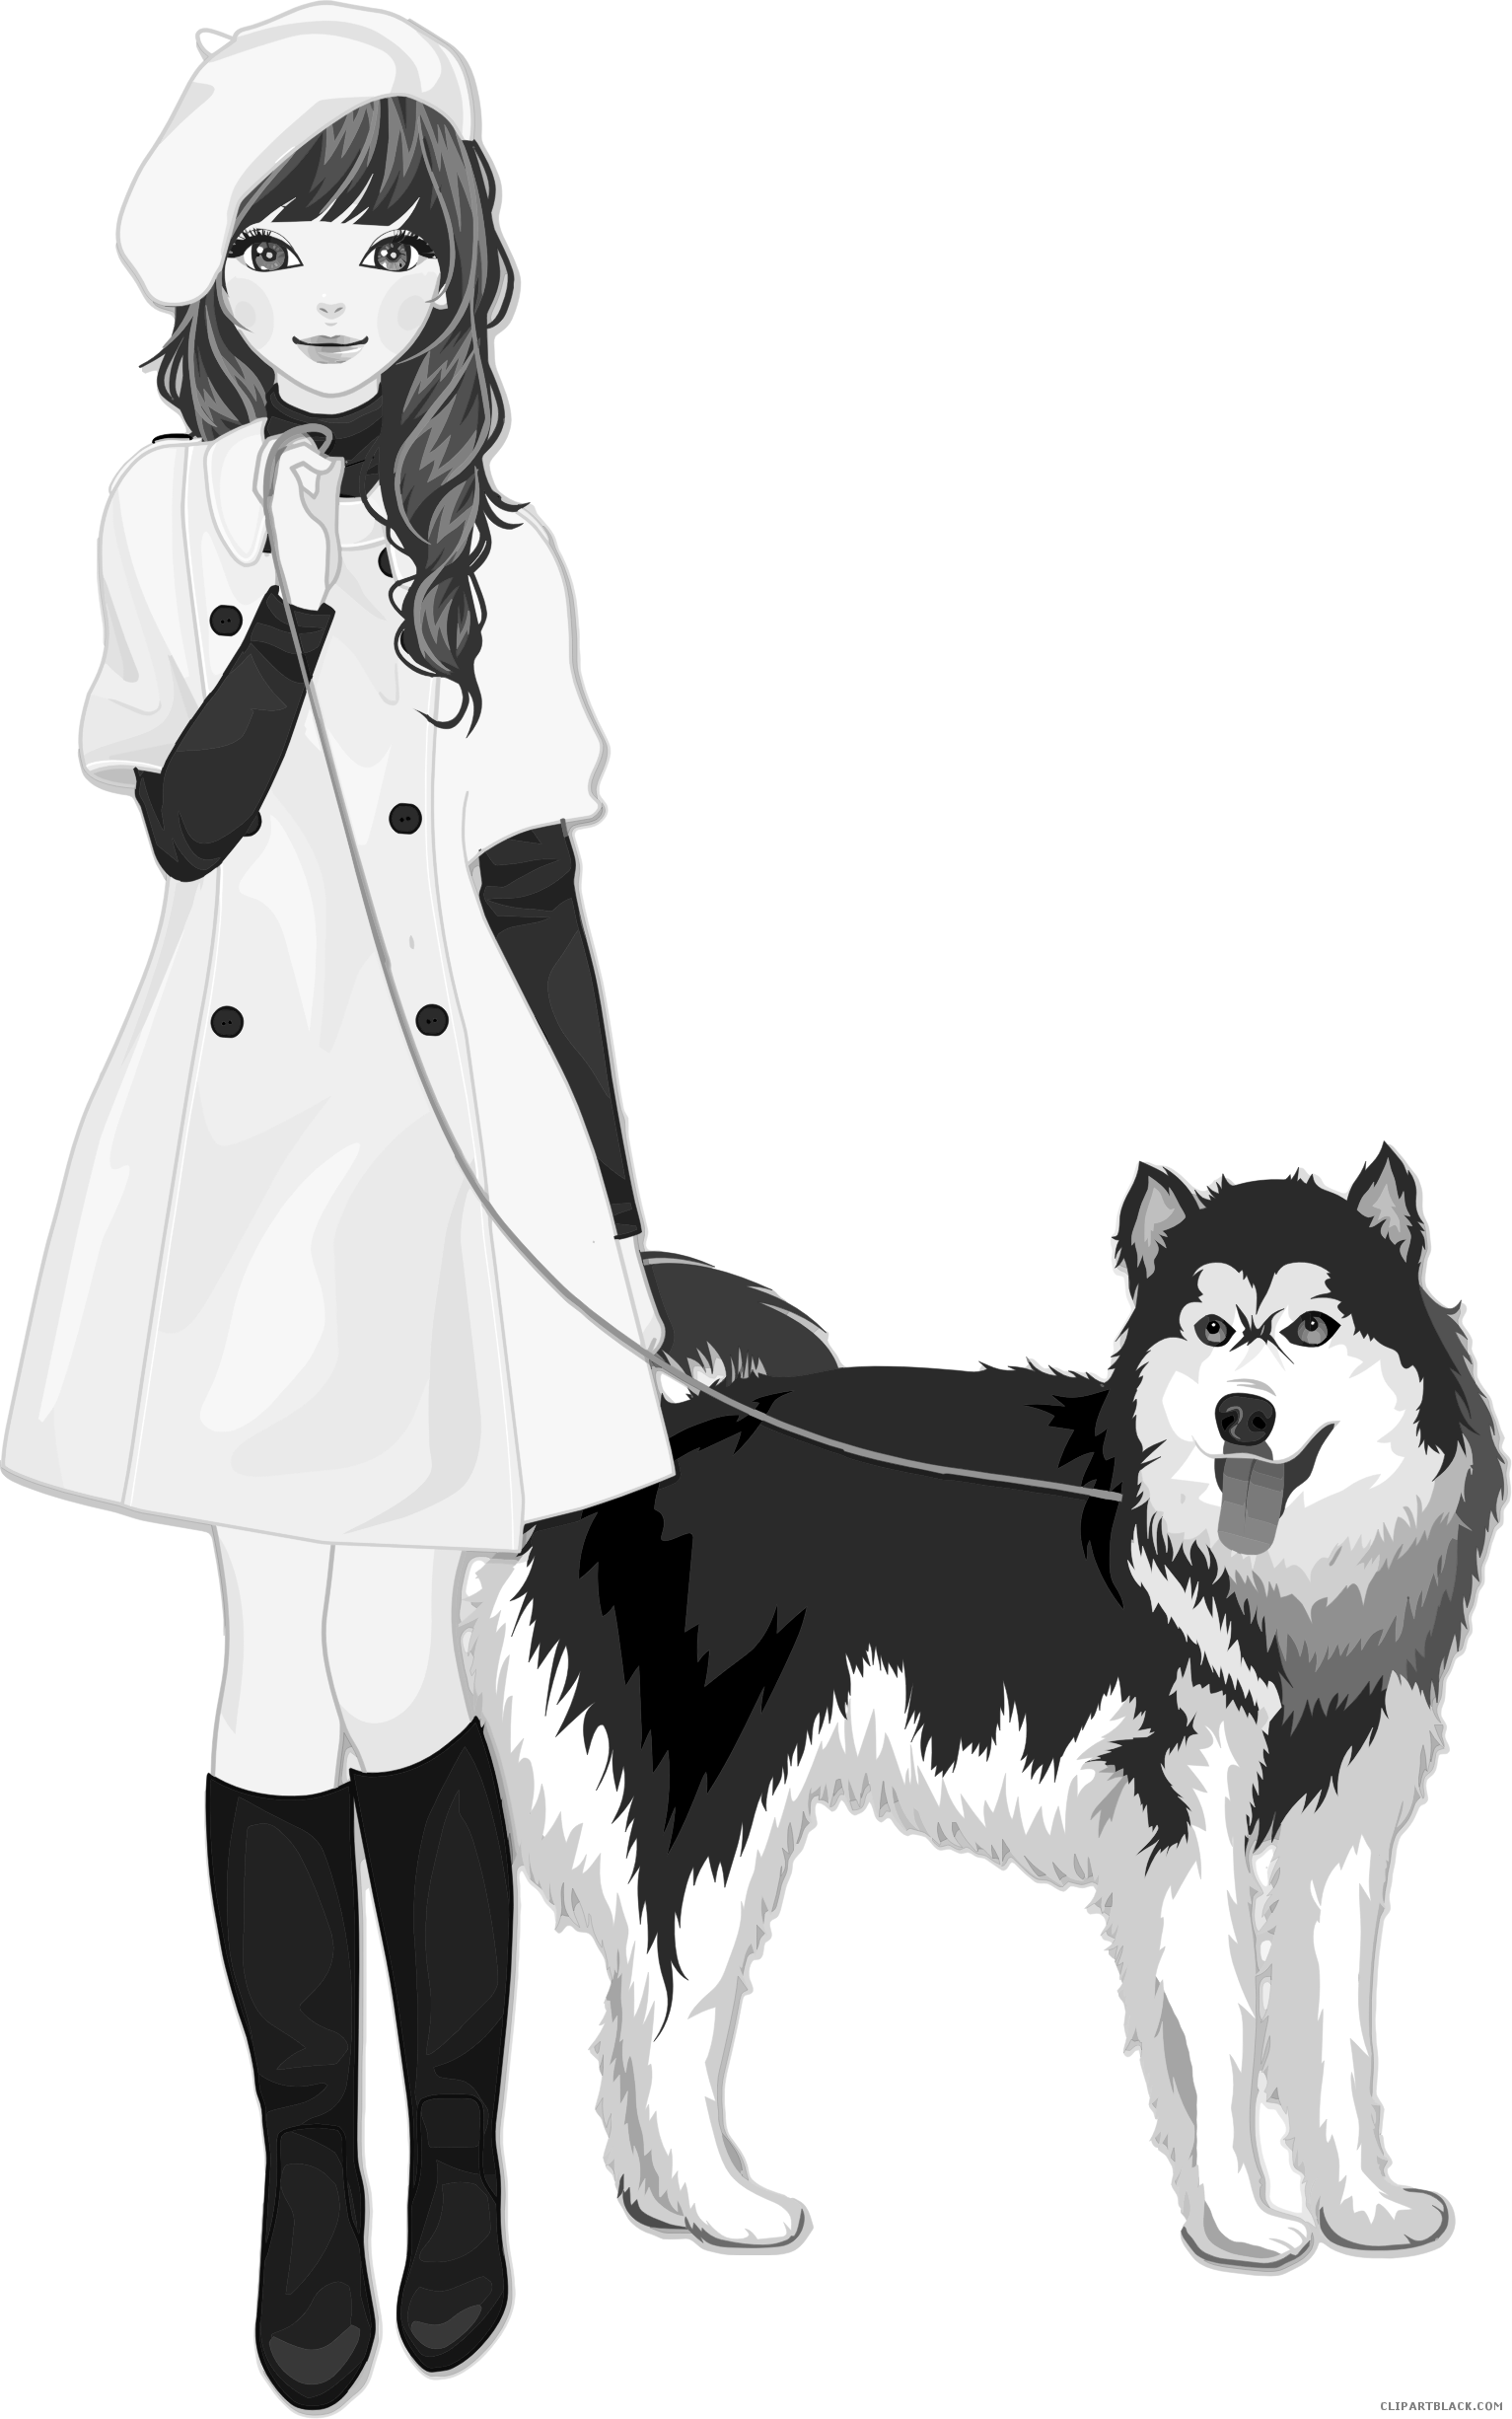 Dog and girl clipart png black and white stock Girl and Dog Clipart - ClipartBlack.com png black and white stock